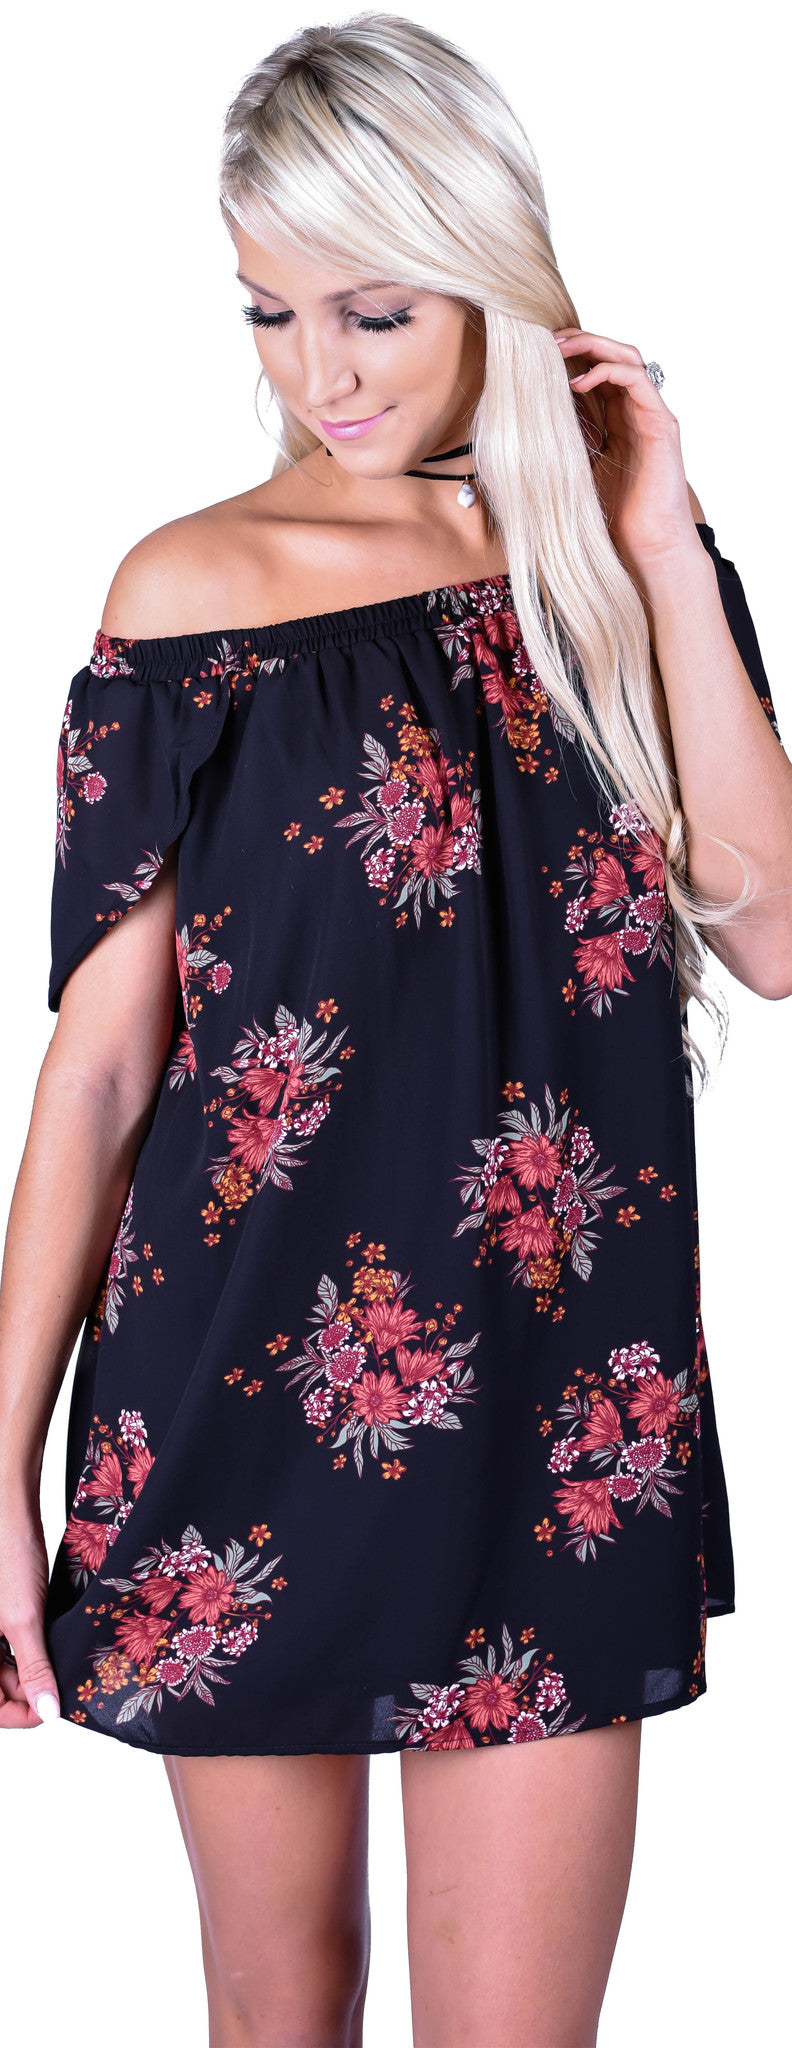 Midnight Floral Dress-Black